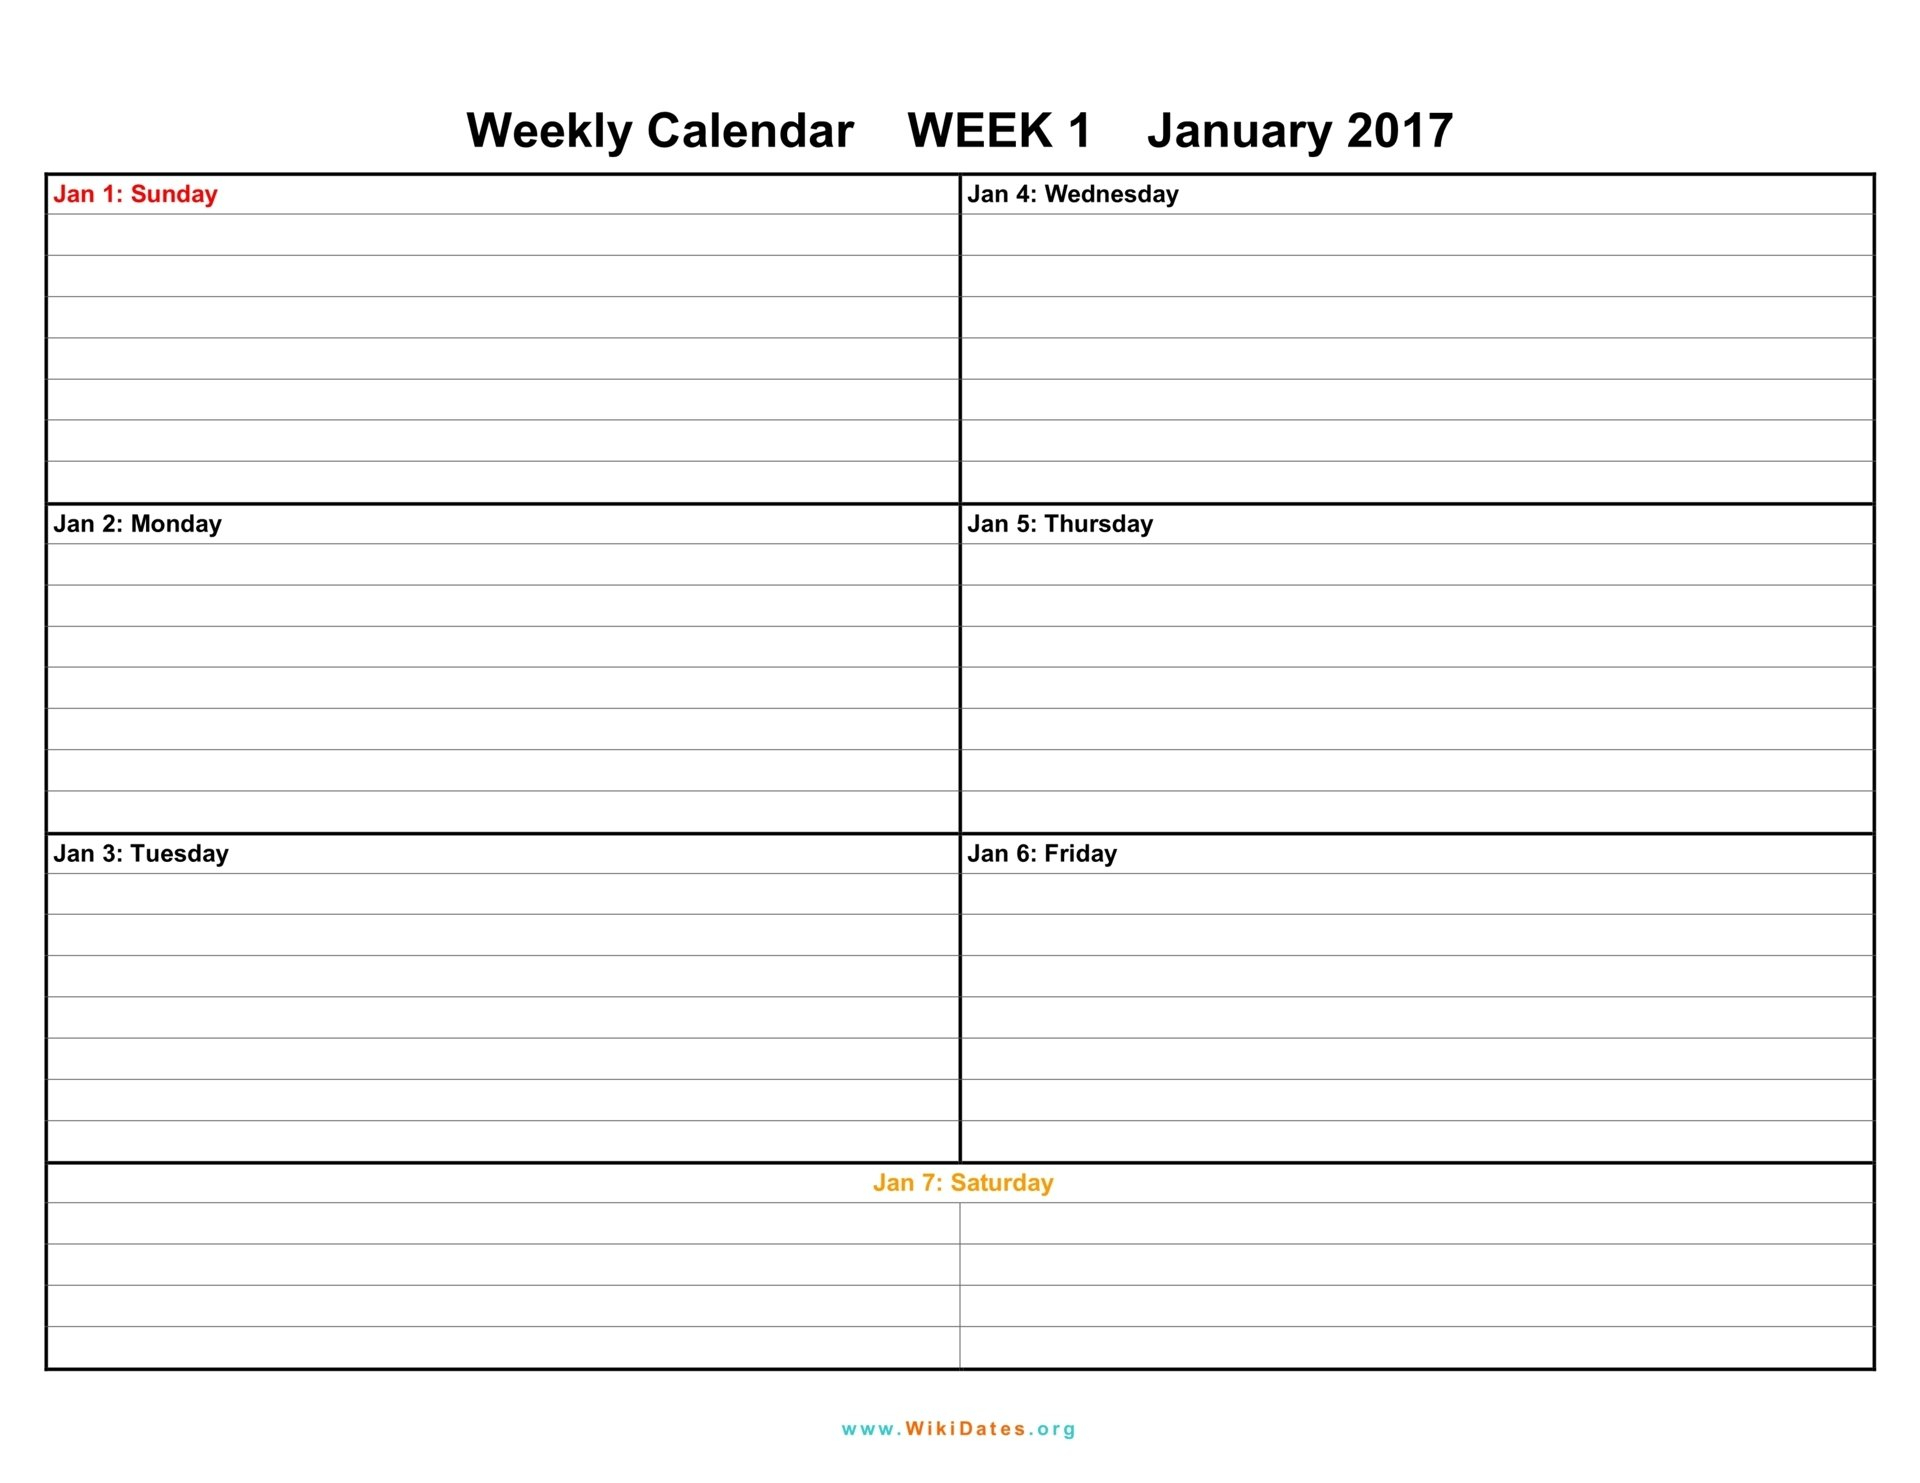 Weekly Calendar – Download Weekly Calendar 2017 And 2018 Printable Calendar For 1 Week